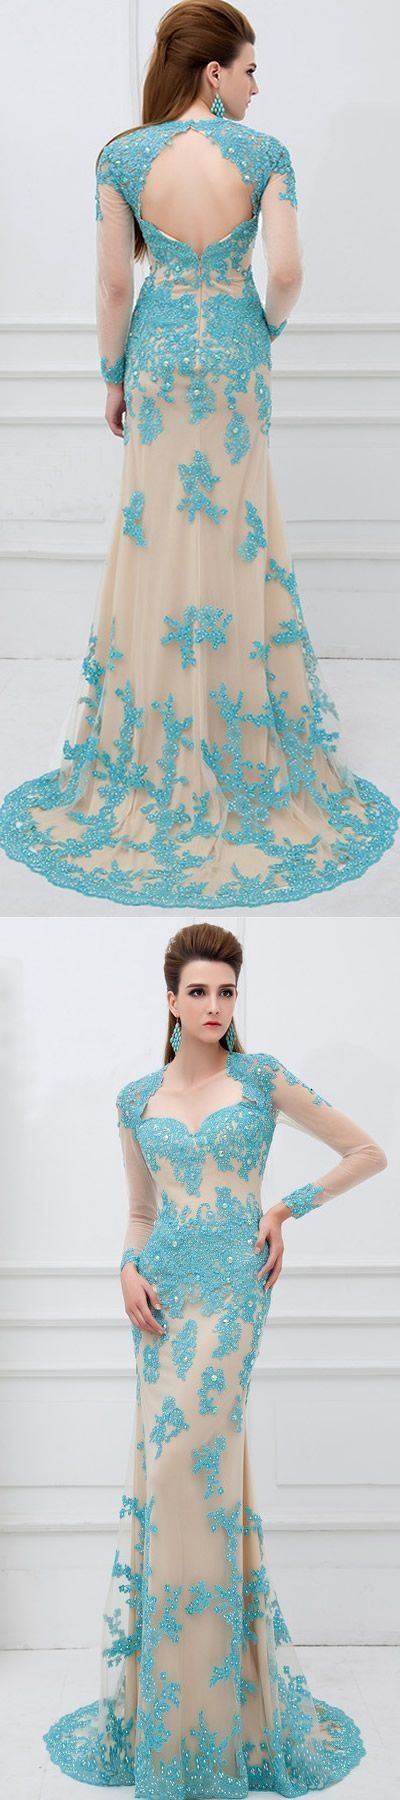 Turqoise Blue Small Train Muslim Mermaid Lace Beaded Formal Long Sleeve Prom Dress Gown,lace prom dress,beading Crystal Mermaid Lace Formal Evening Dresses With Long Sleeves